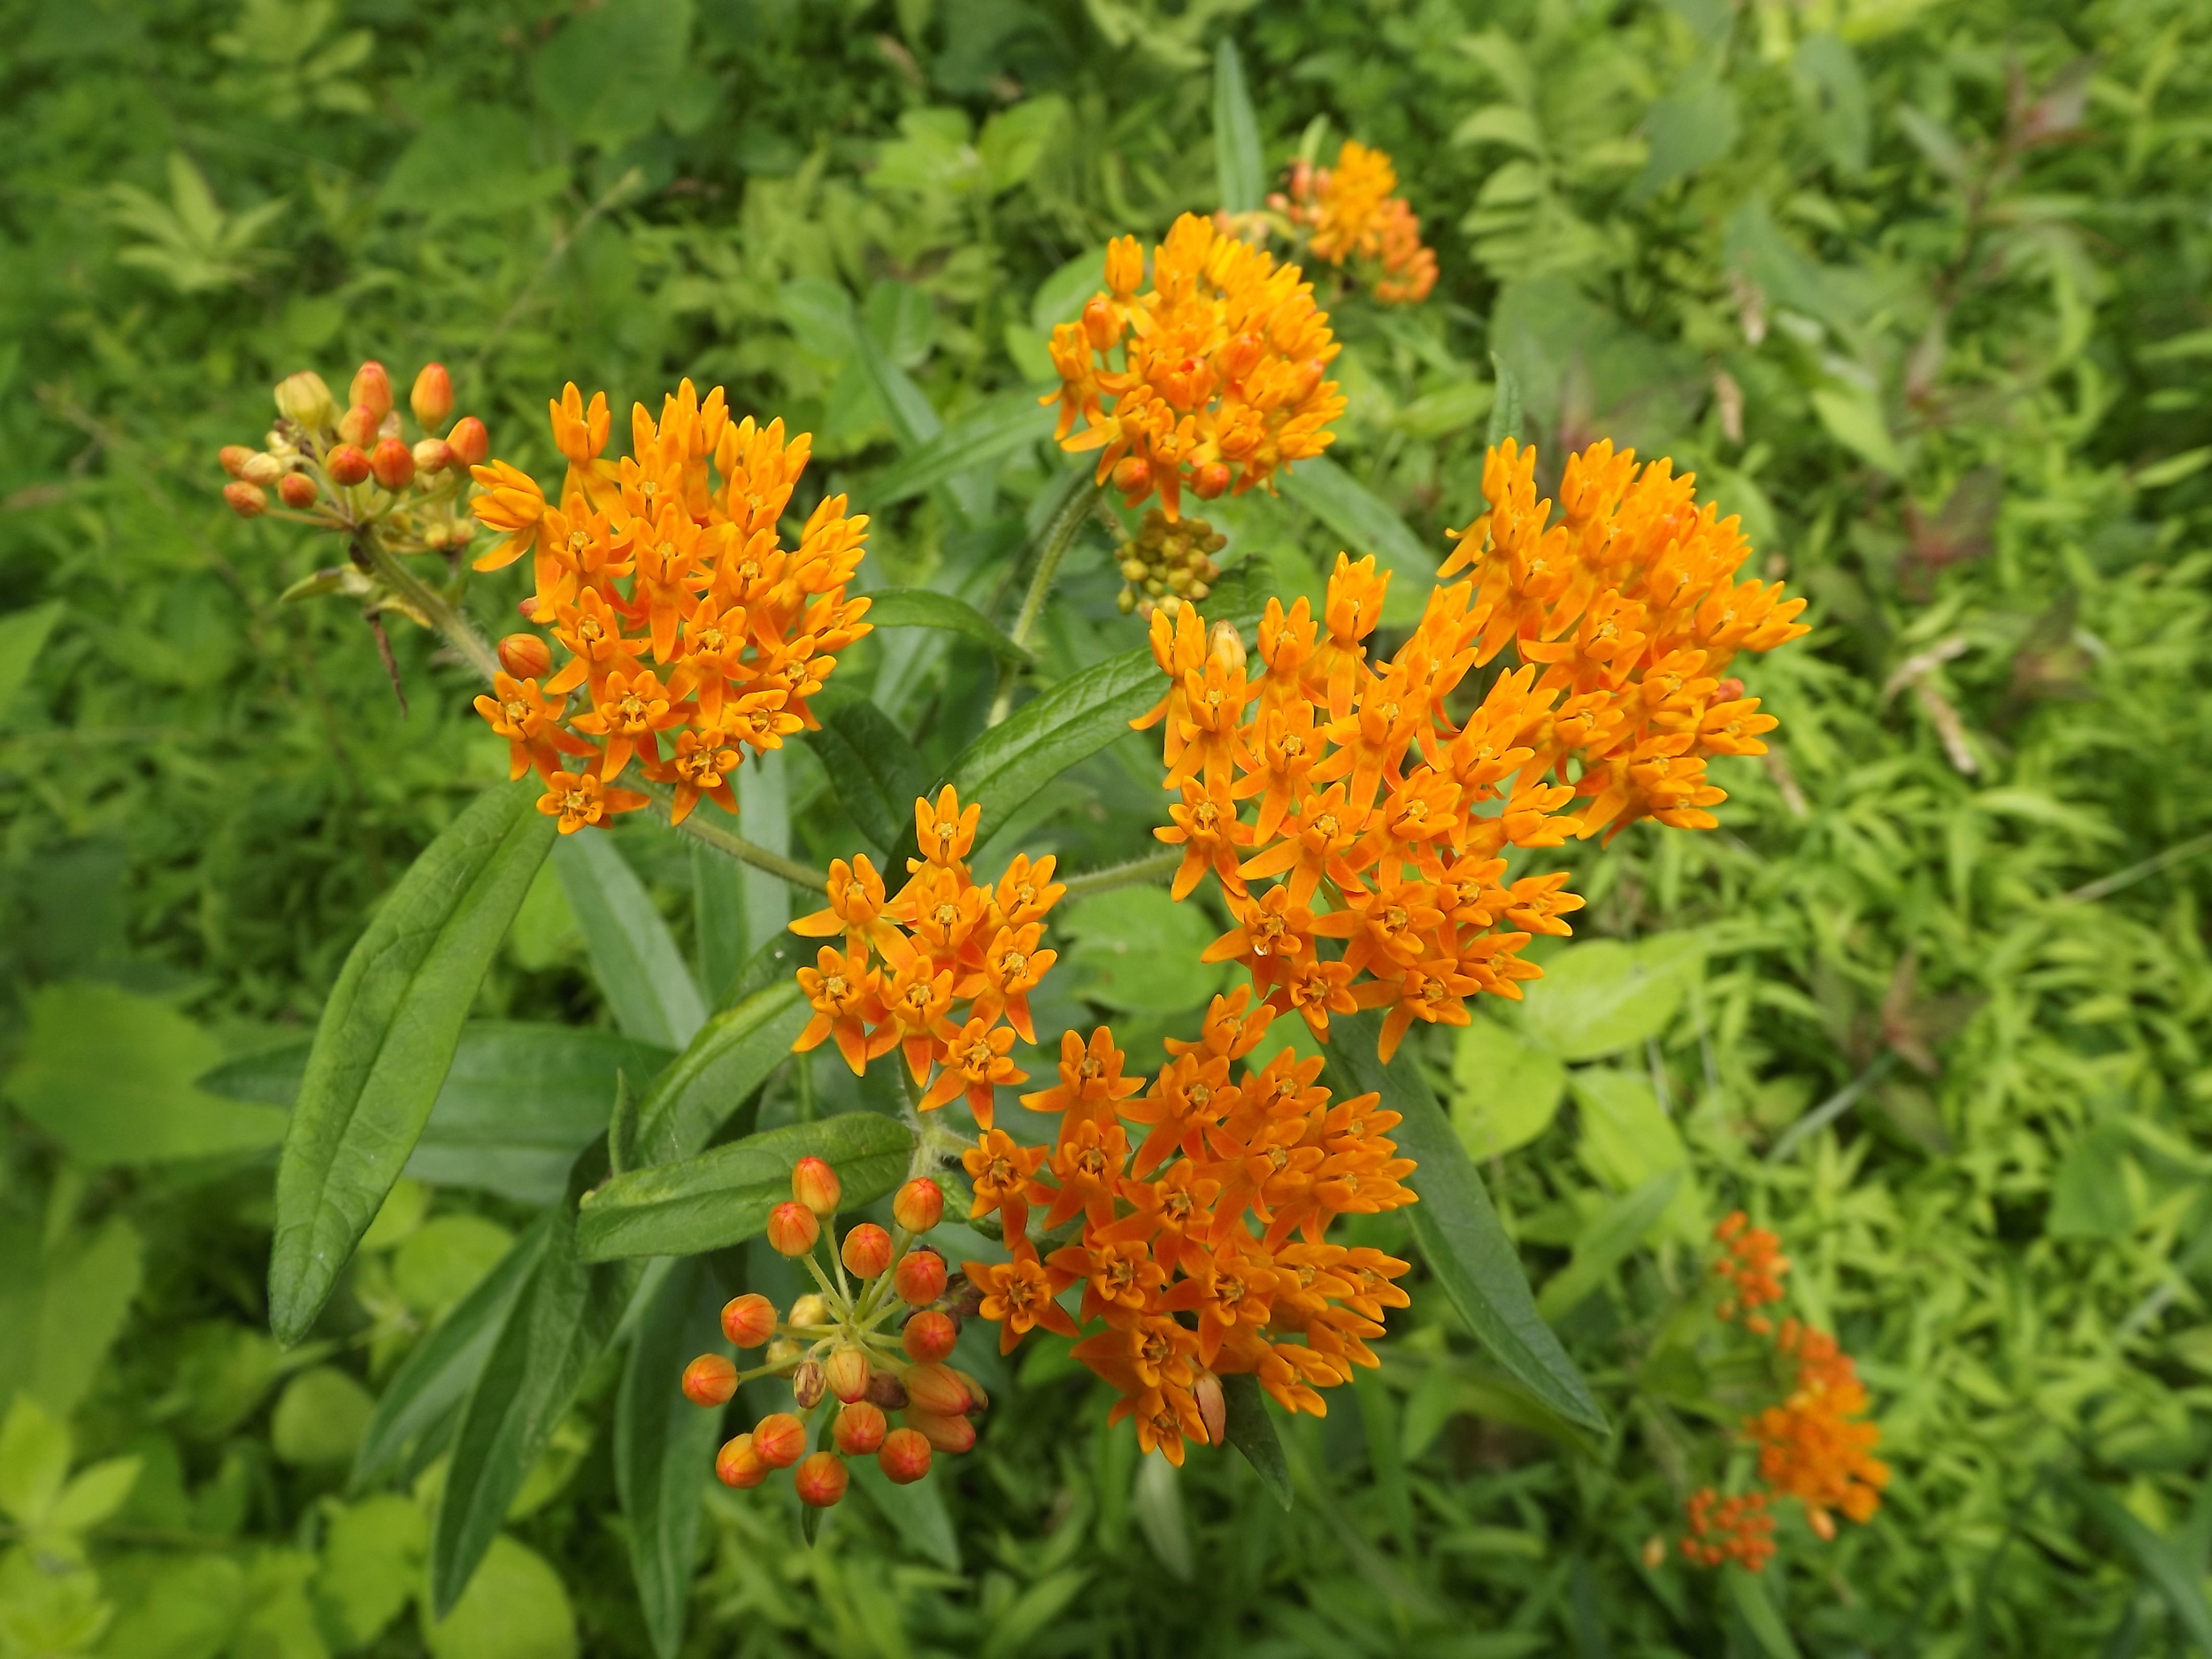 Butterfly Weed ( Asclepias tuberosa ) - The orange flowers of Butterfly Weed are so brilliant they almost glow with an orange hue when set against the green backdrop of the forest.  The flowers stand out so much that several times I've spotted them across a field from a considerable distance.  Like Milkweed, Butterfly Weed is a favorite of butterflies, bees, and other insects.